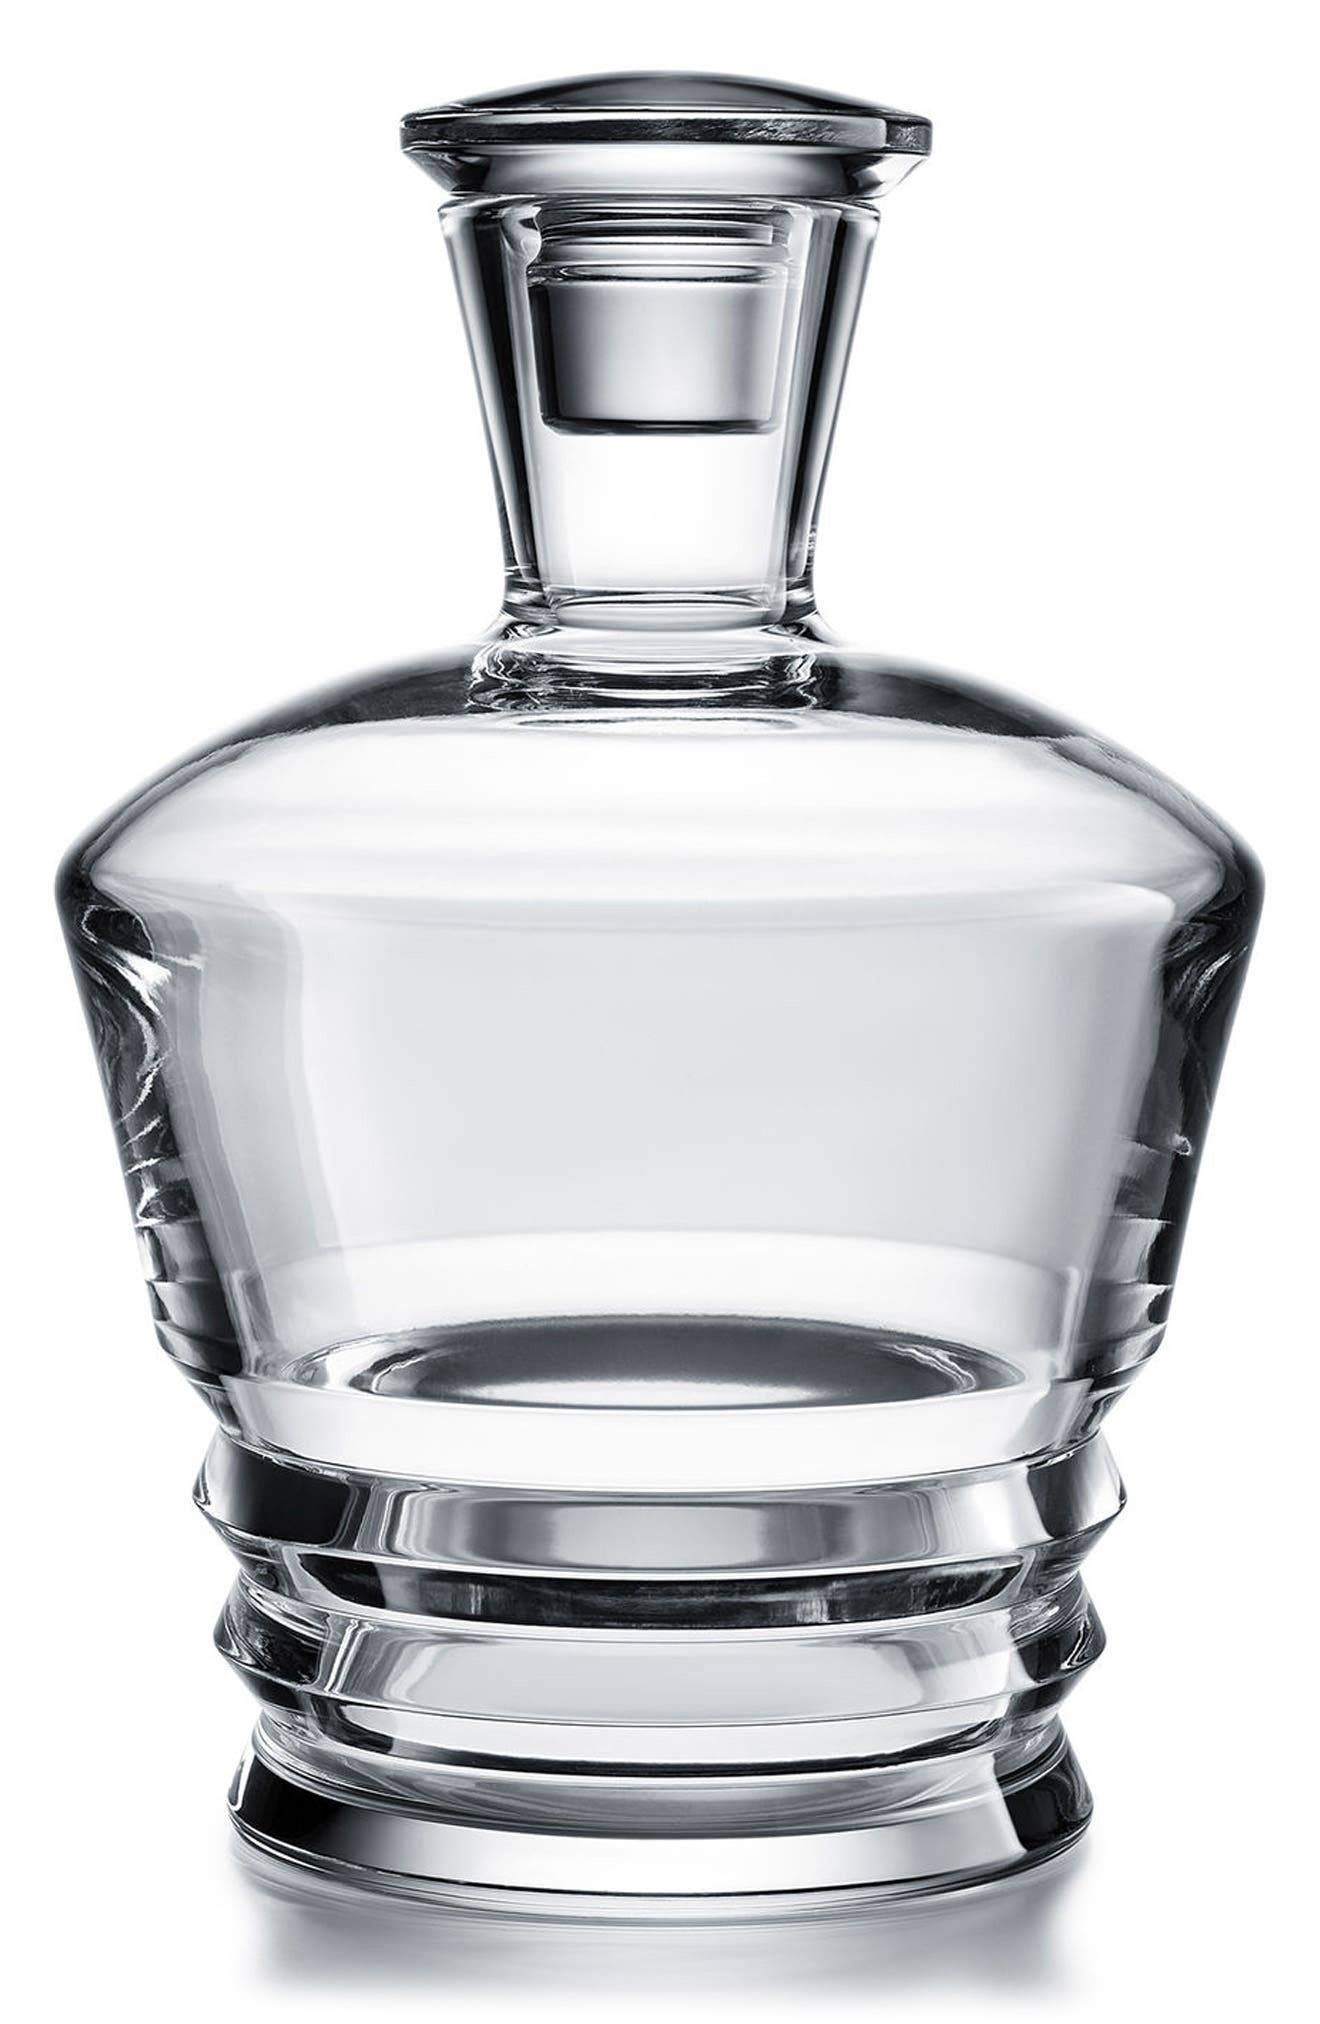 Baccarat Vega Round Lead Crystal Whisky Decanter, Size One Size - White